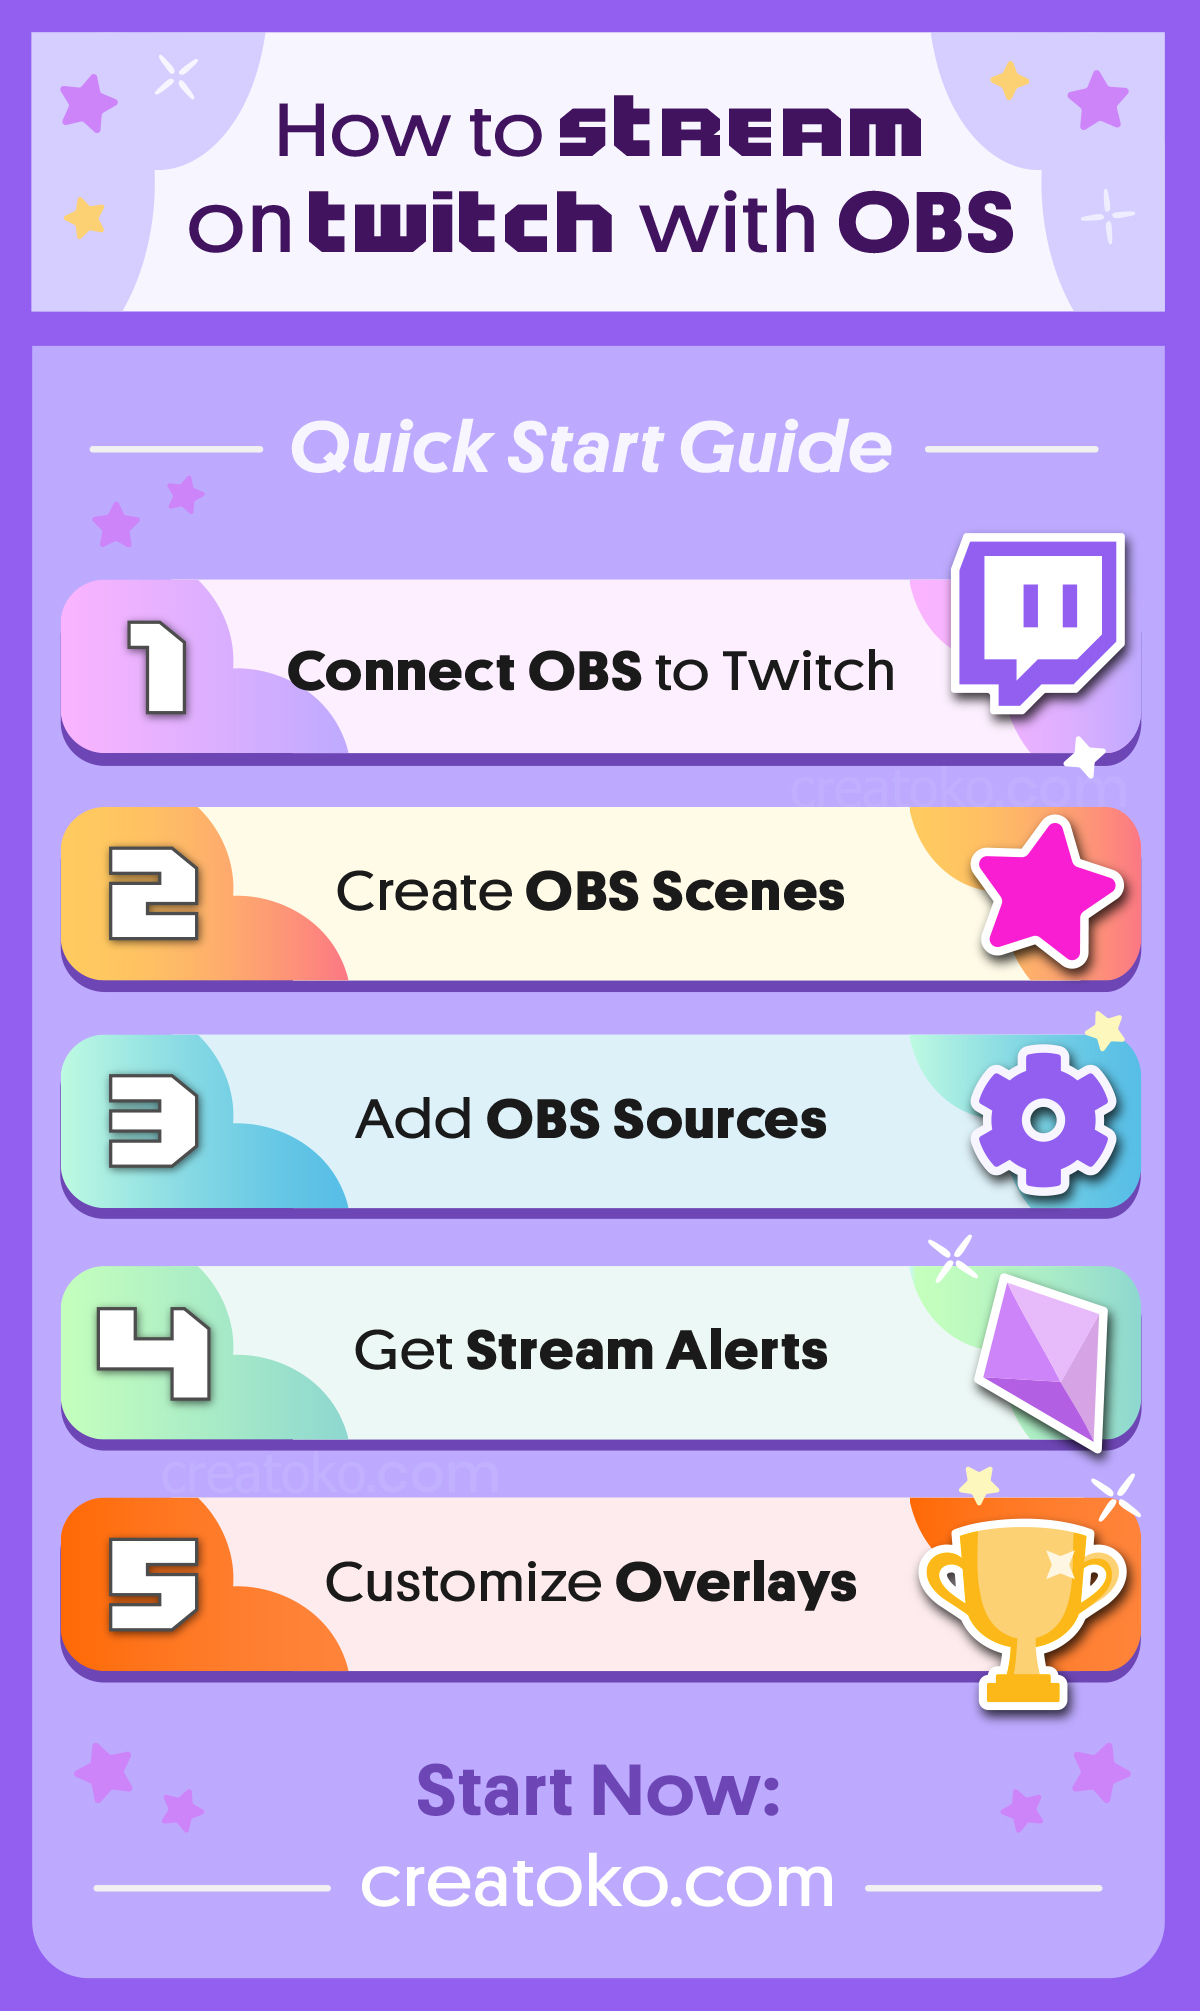 How to Stream on Twitch with OBS | How to Stream with OBS Infographic